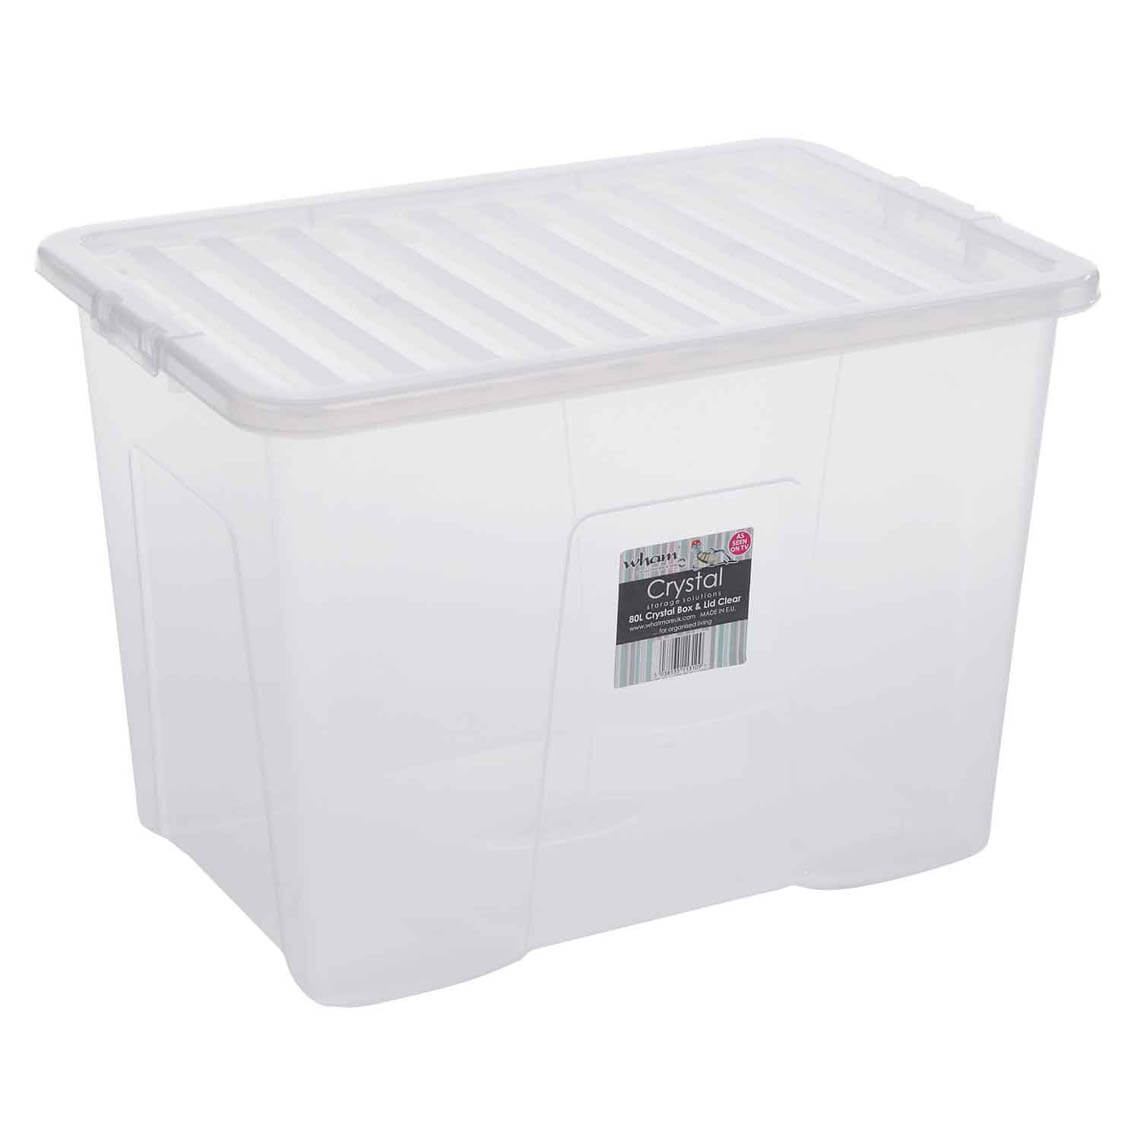 Clear Box Crystal Box And Lid Clear 80l Home Store 43 More